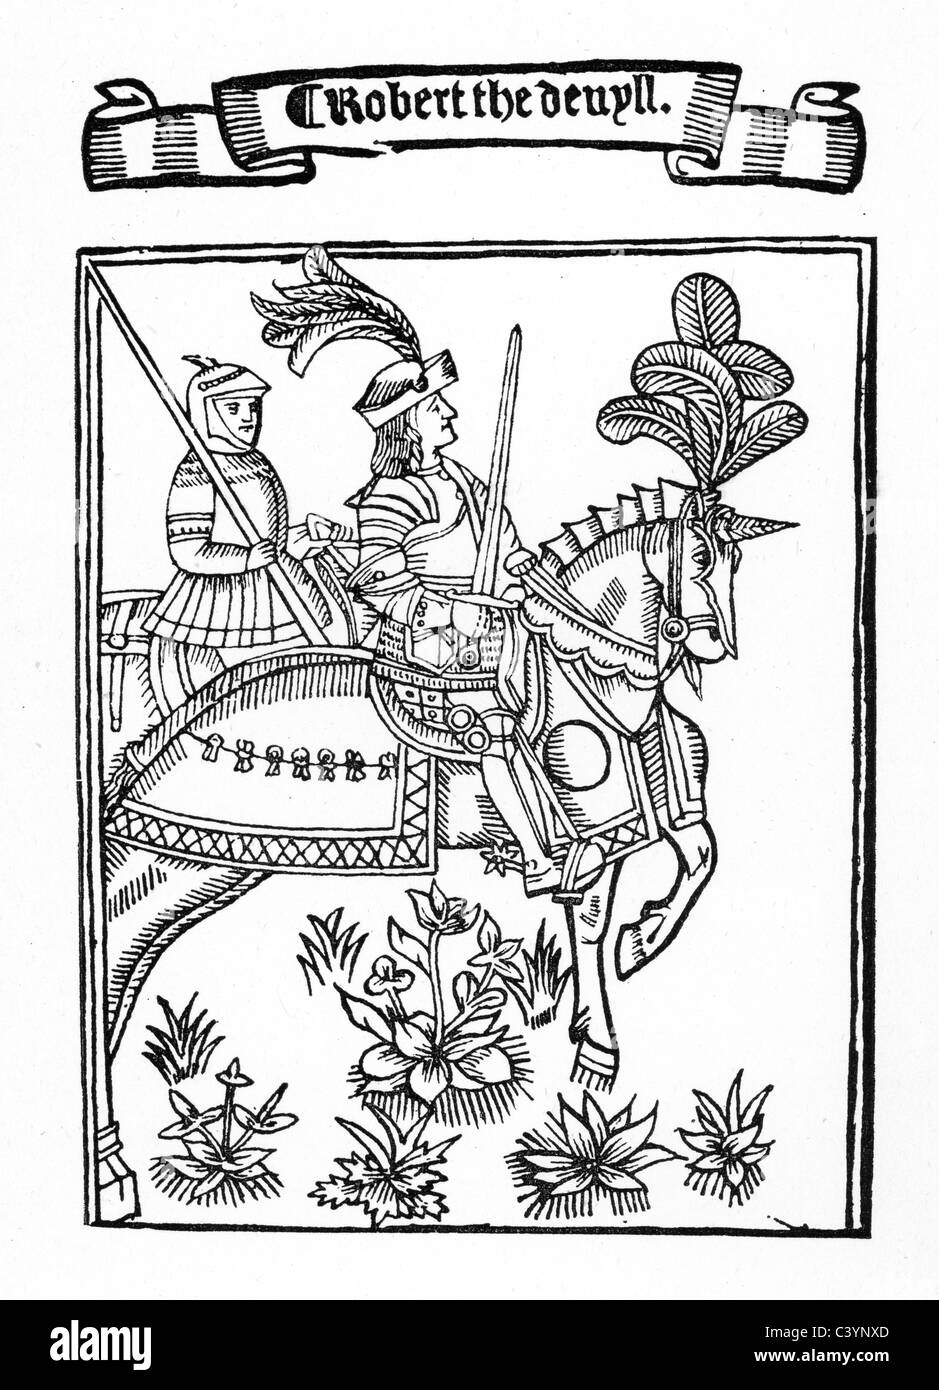 Medieval woodcut showing Robert the Devil, wearing a suite of armour and mounted on his horse Stock Photo